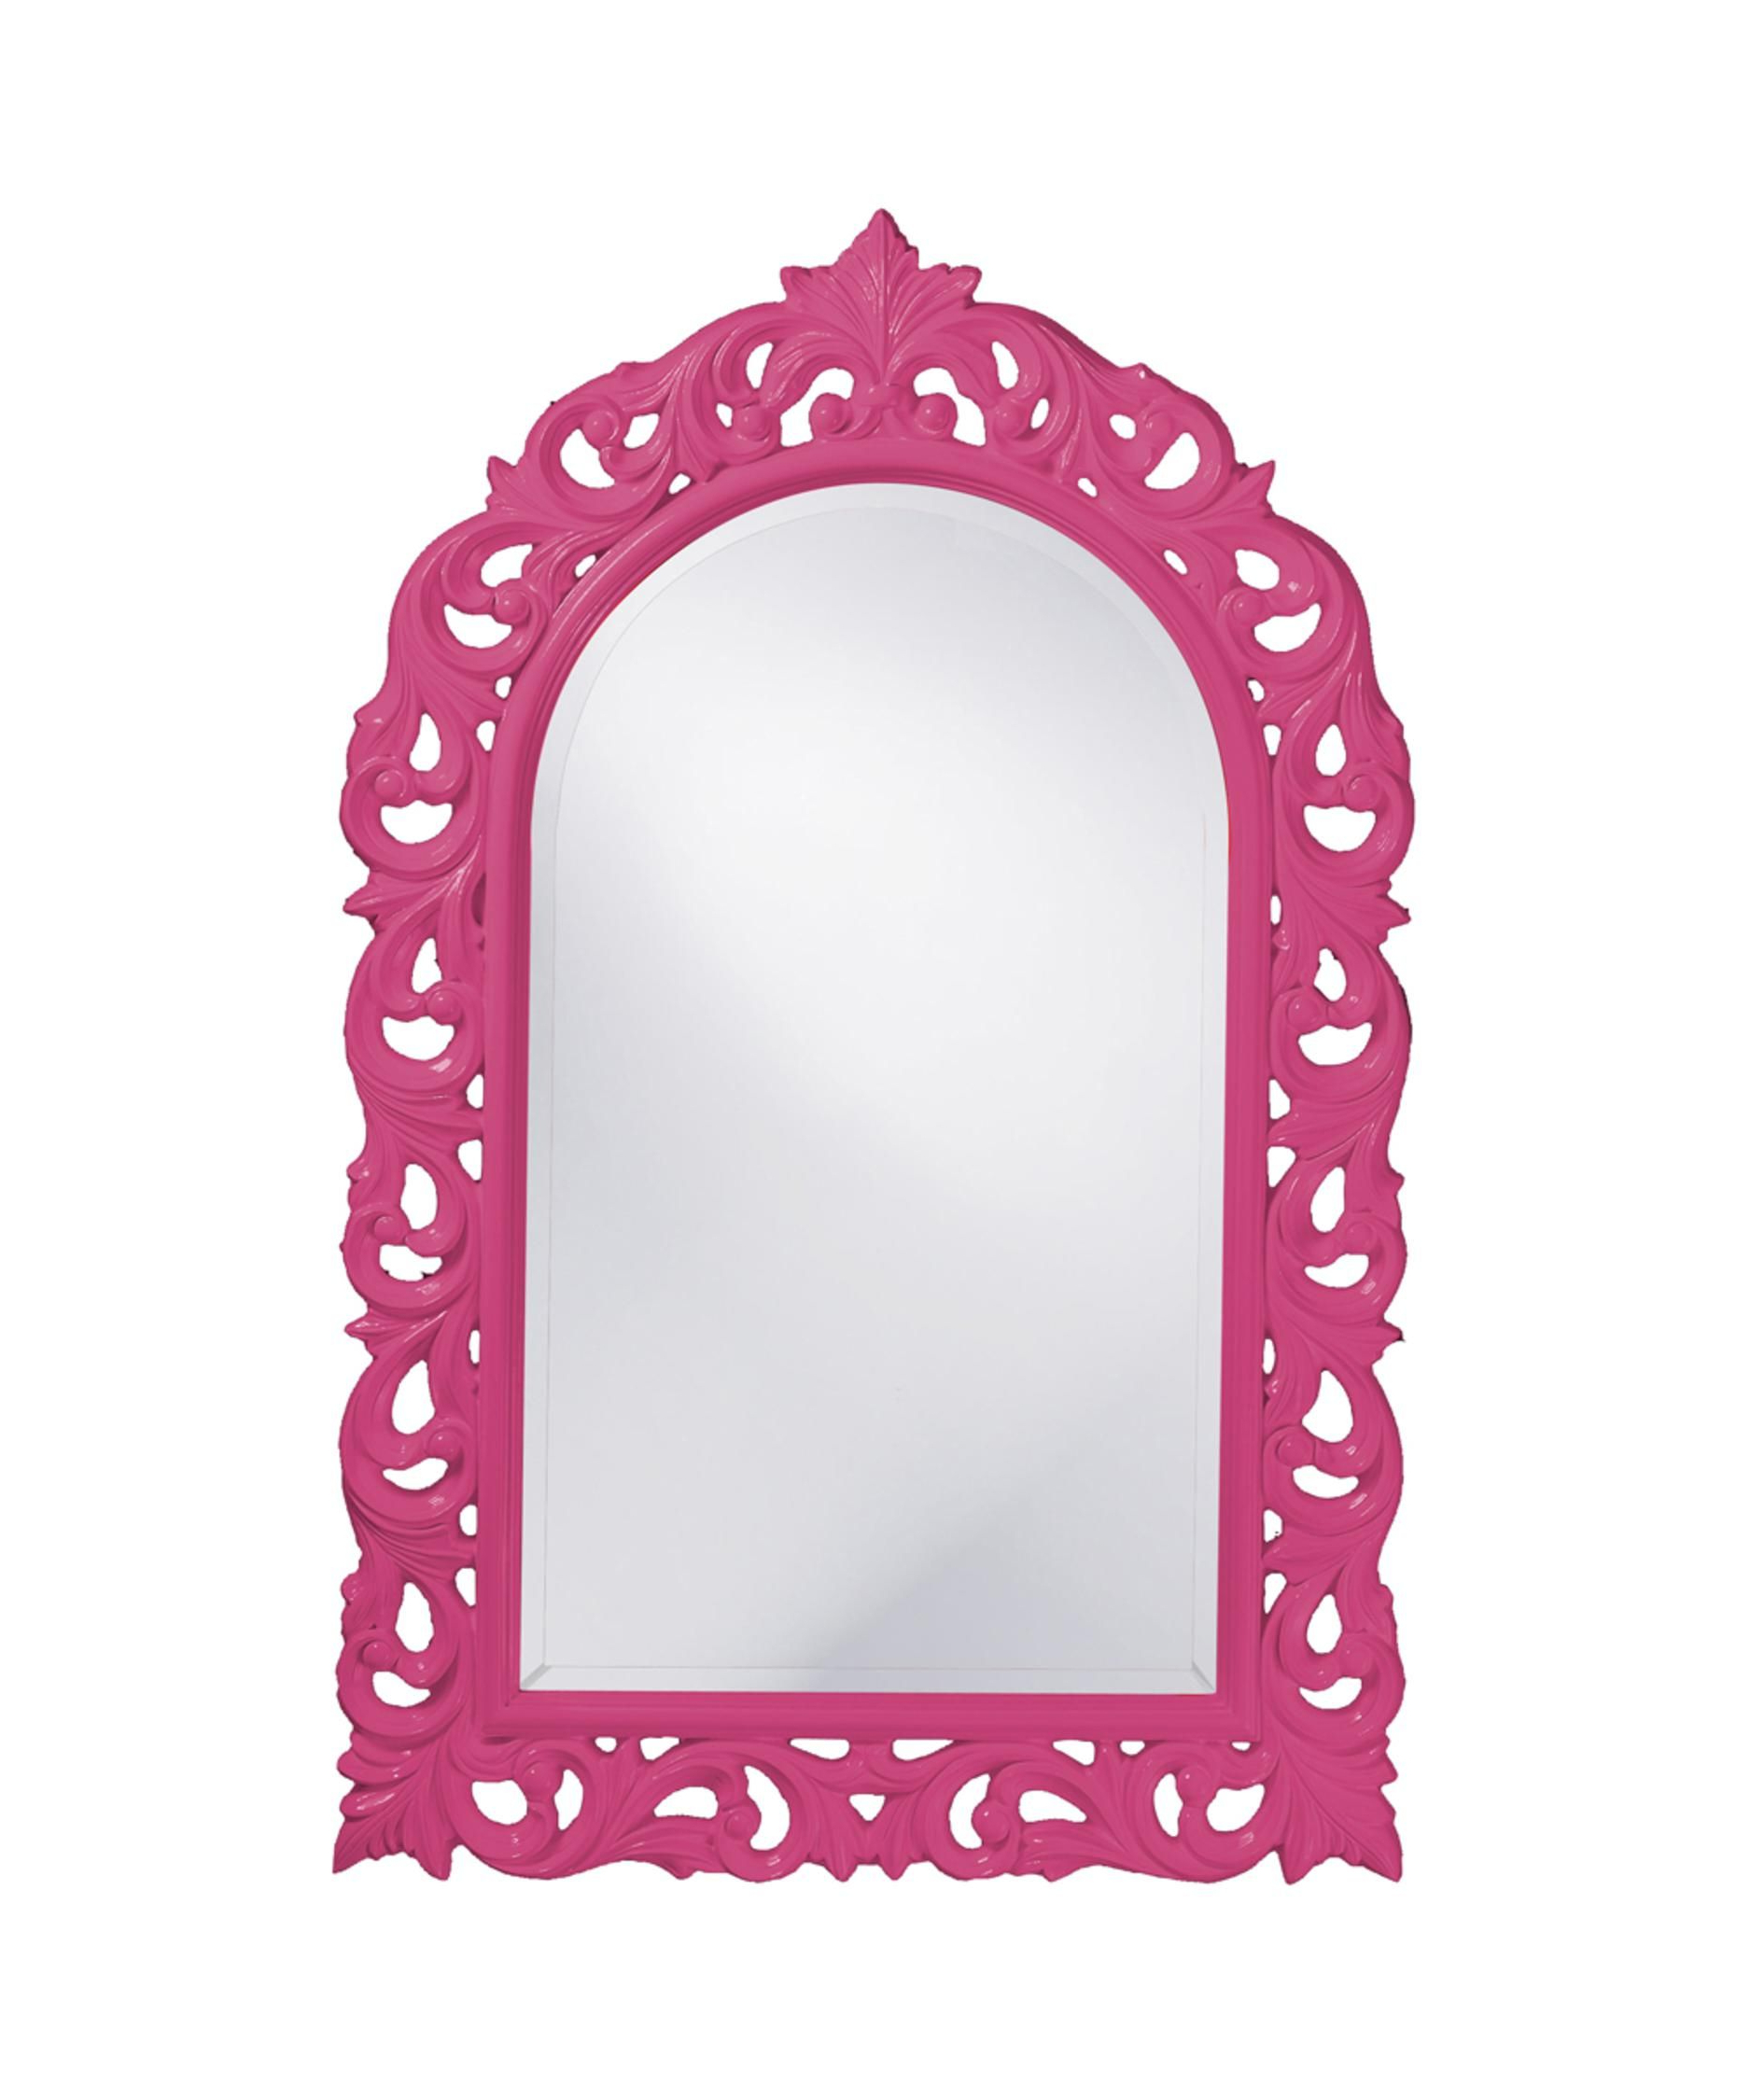 """Newest Pink Wall Mirrors With Orleans 30"""" Wall Mirror In Hot Pink: Wall Mirror In Hot Pink (View 5 of 20)"""